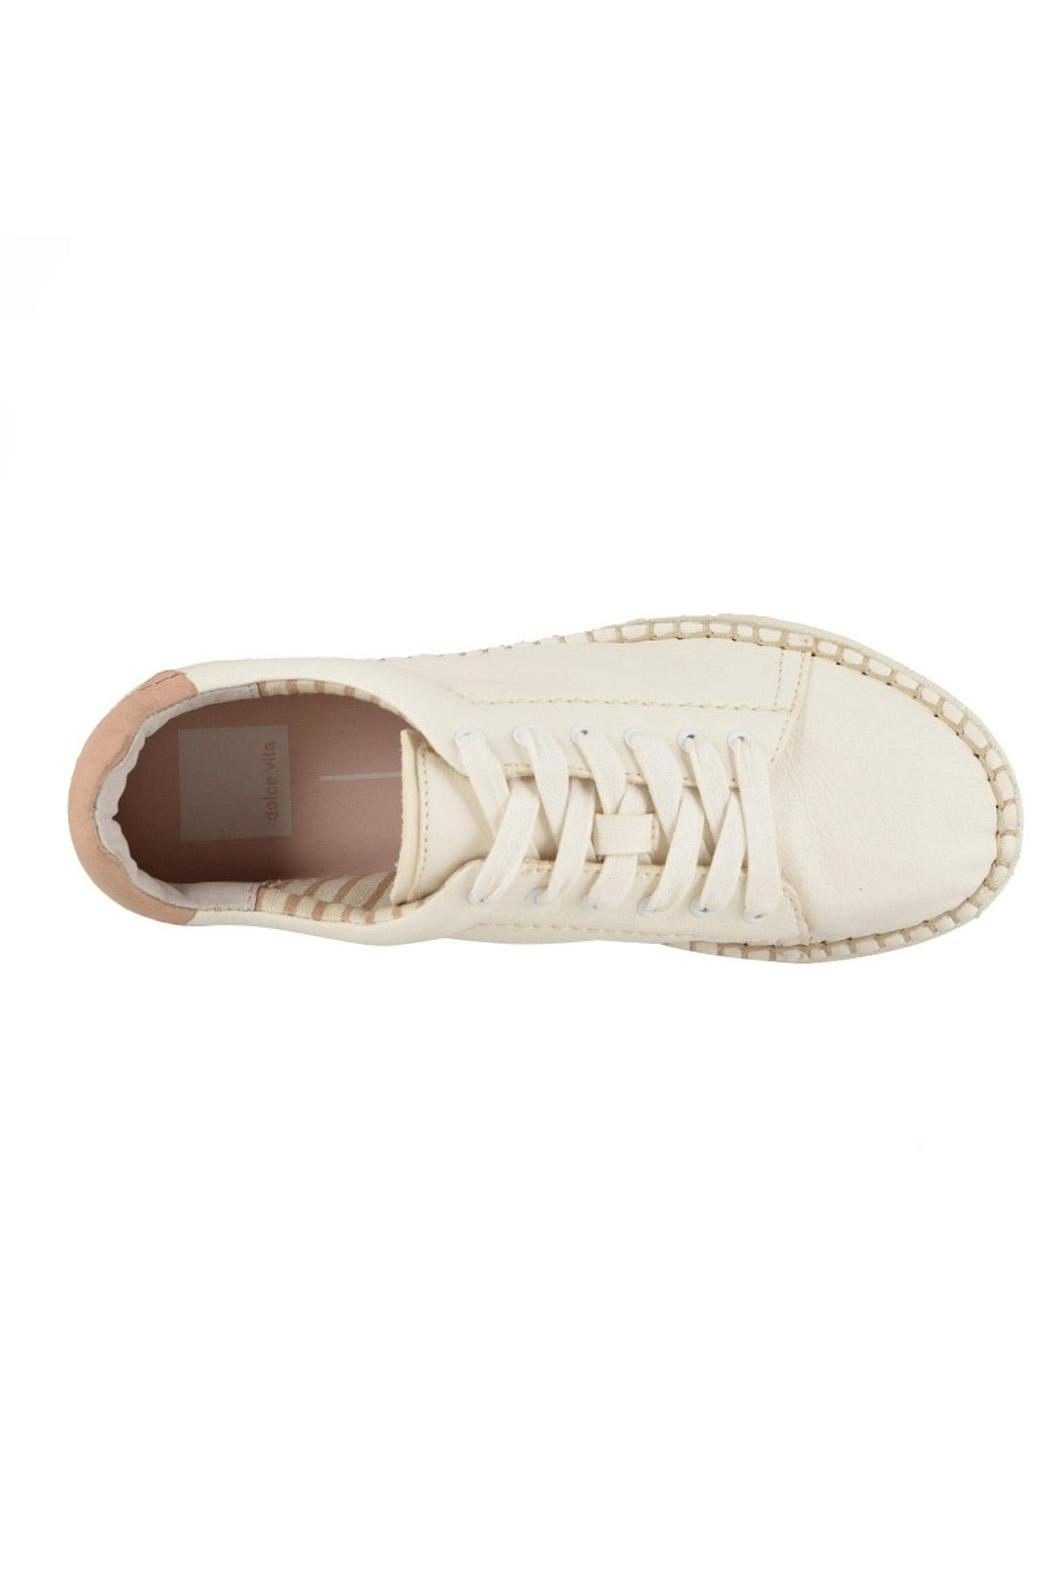 Dolce Vita Ivory Leather Sneakers - Side Cropped Image